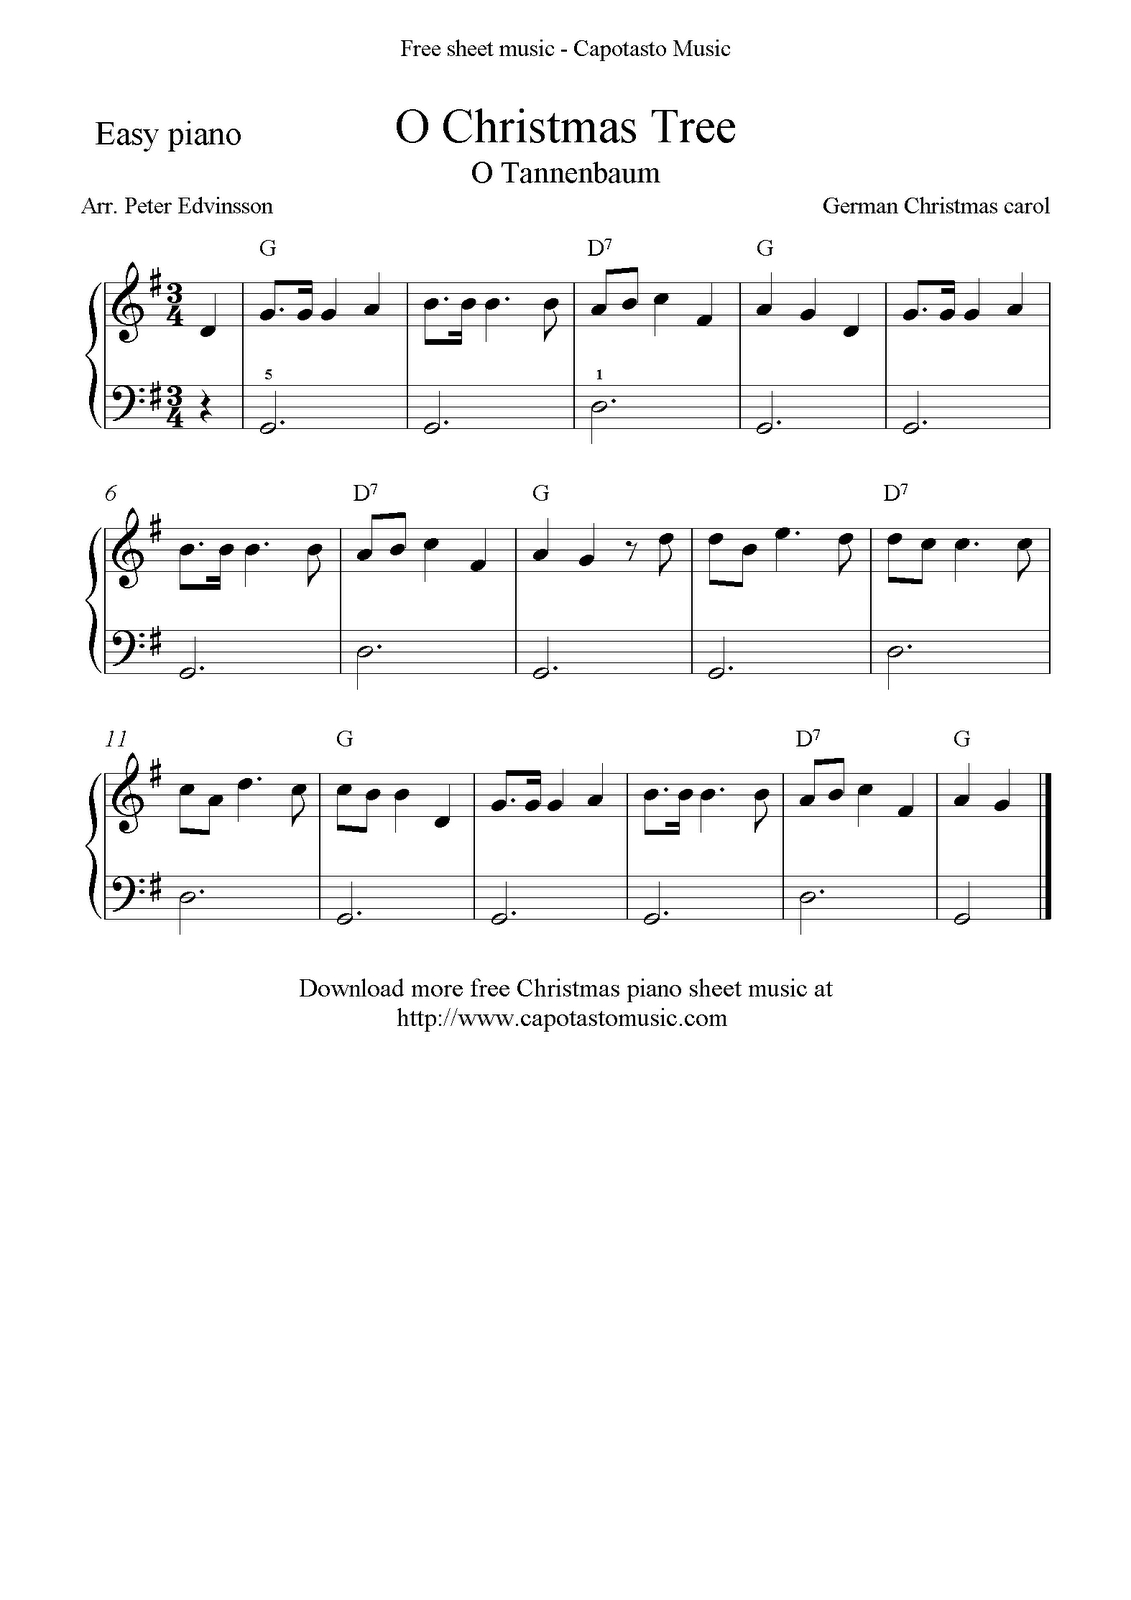 Free Christmas Sheet Music For Easy Piano Solo, O Christmas Tree - Free Christmas Piano Sheet Music For Beginners Printable